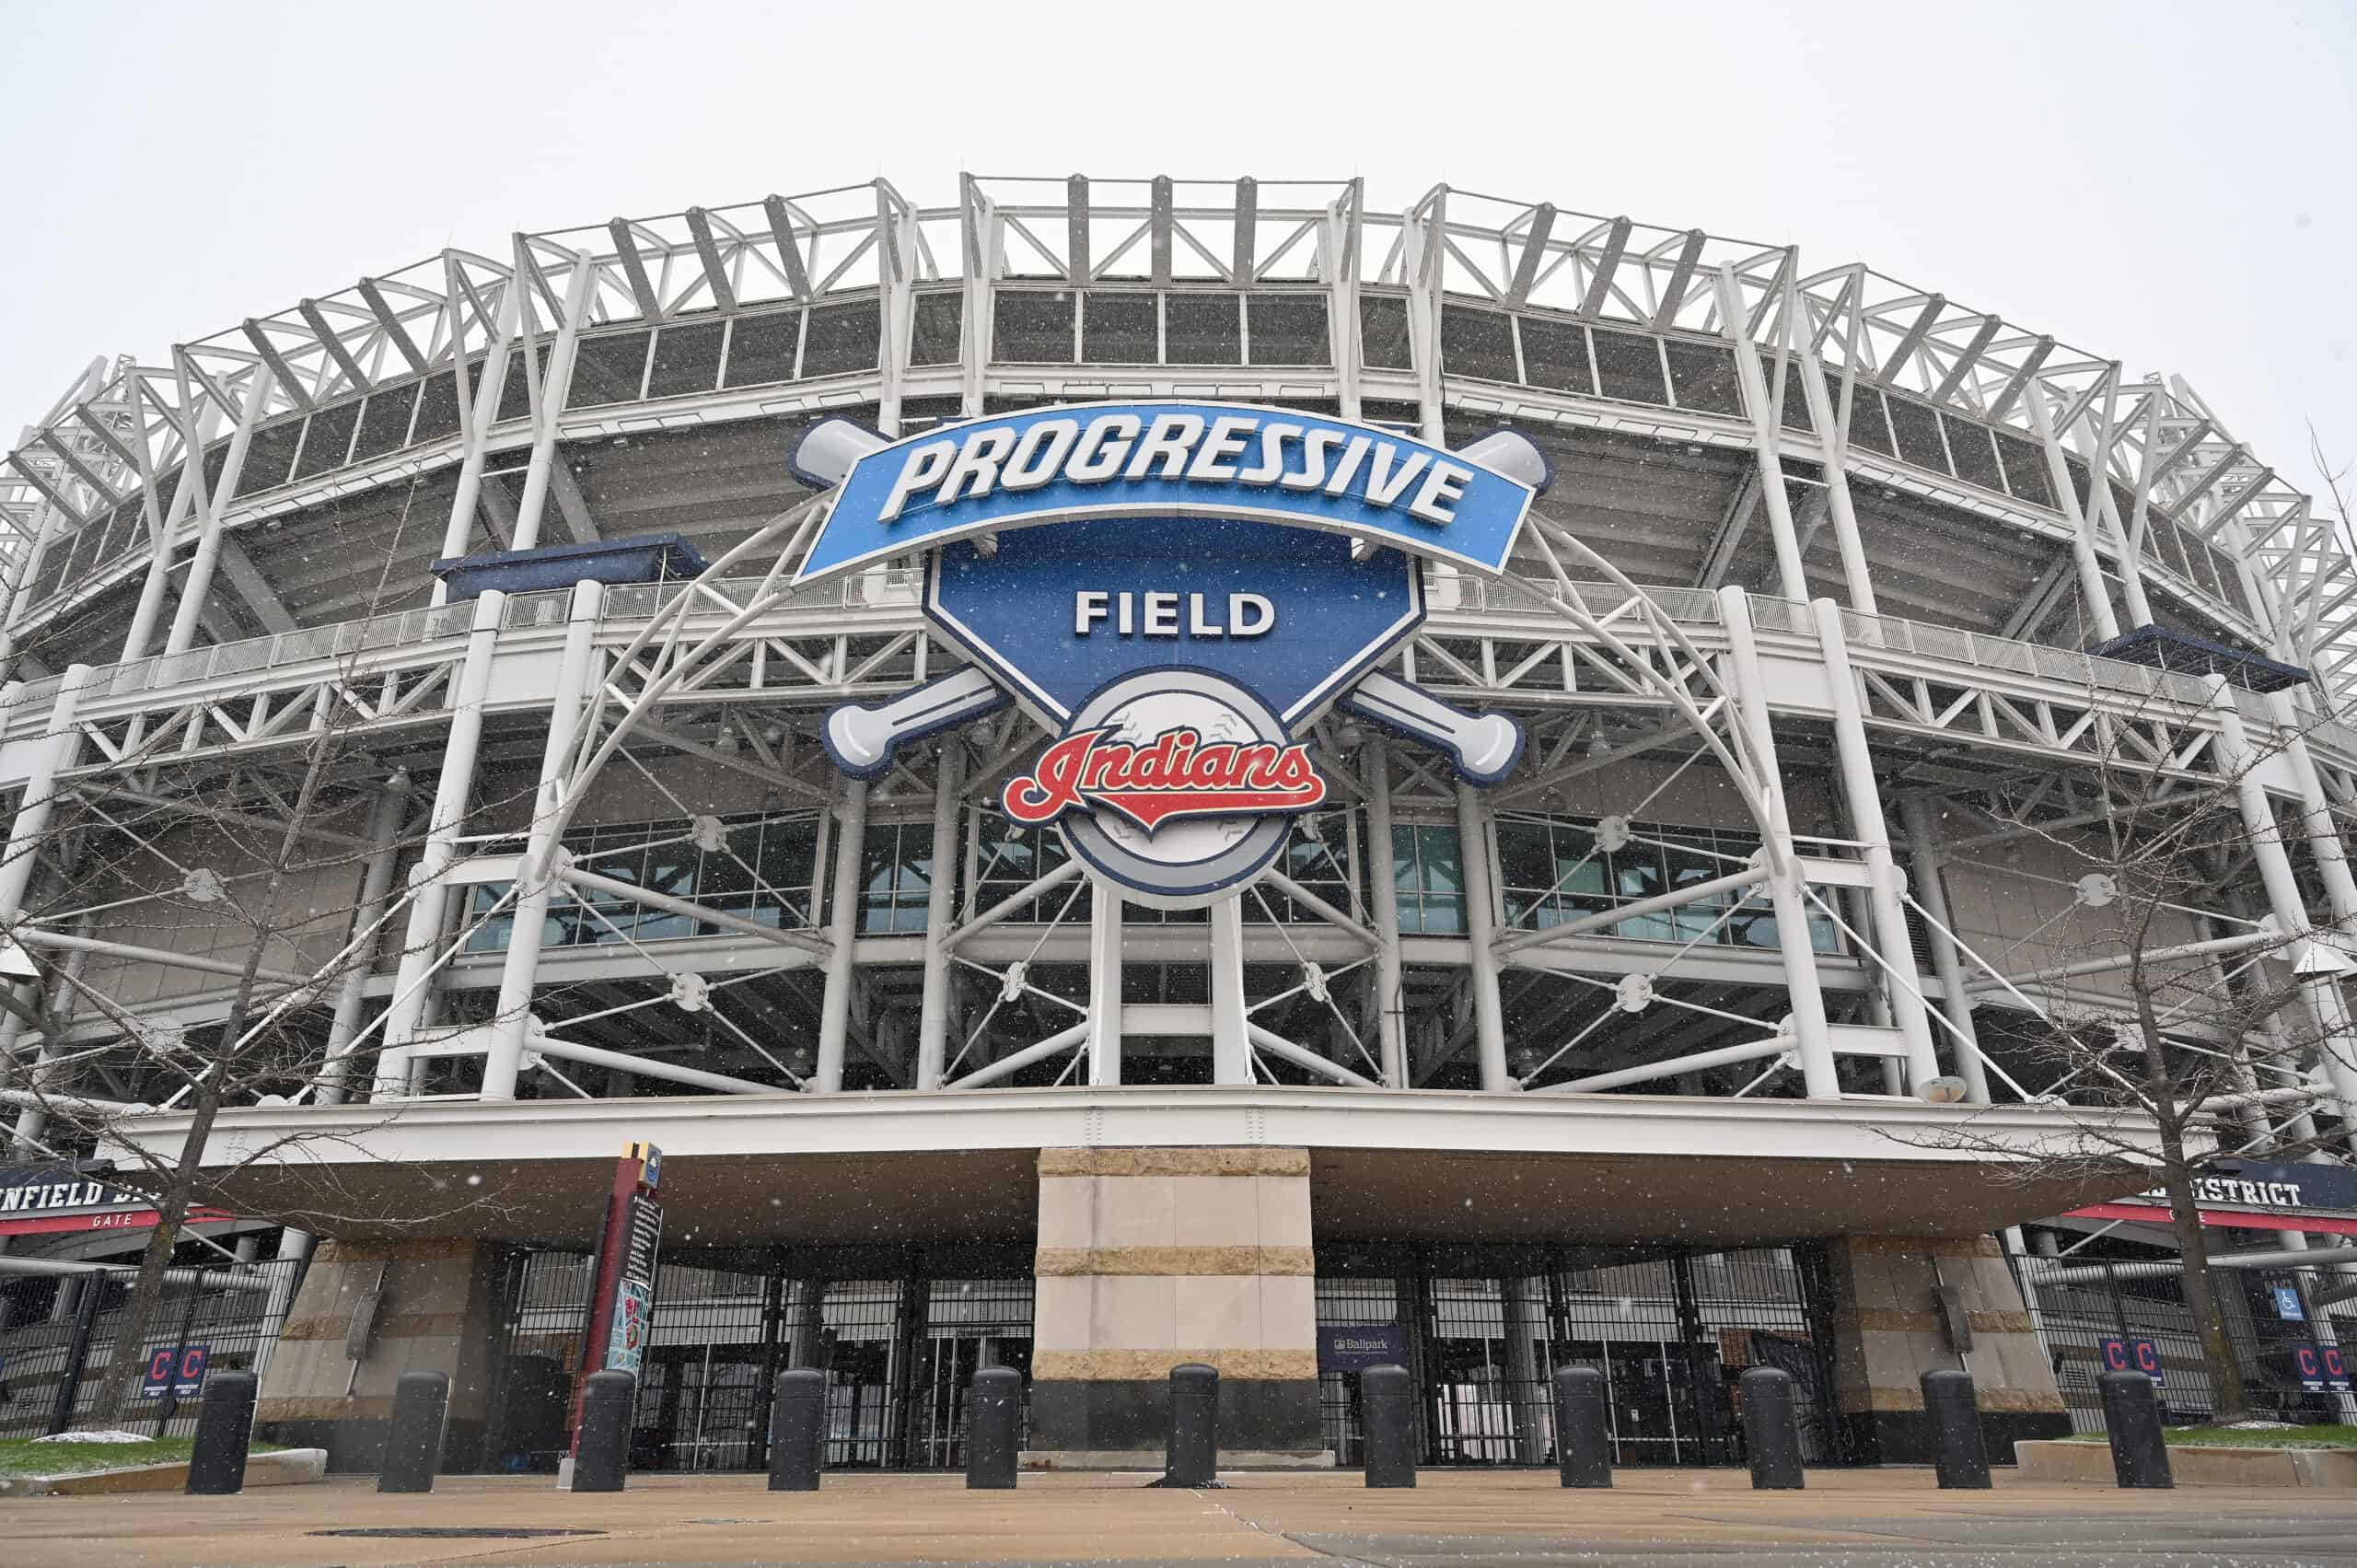 """The Cleveland Indians logo is seen at the team's Progressive Field stadium on December 16, 2020 in Cleveland, Ohio. The Cleveland baseball team announced they will be dropping the """"Indians"""" from the team name after the 2021 season."""